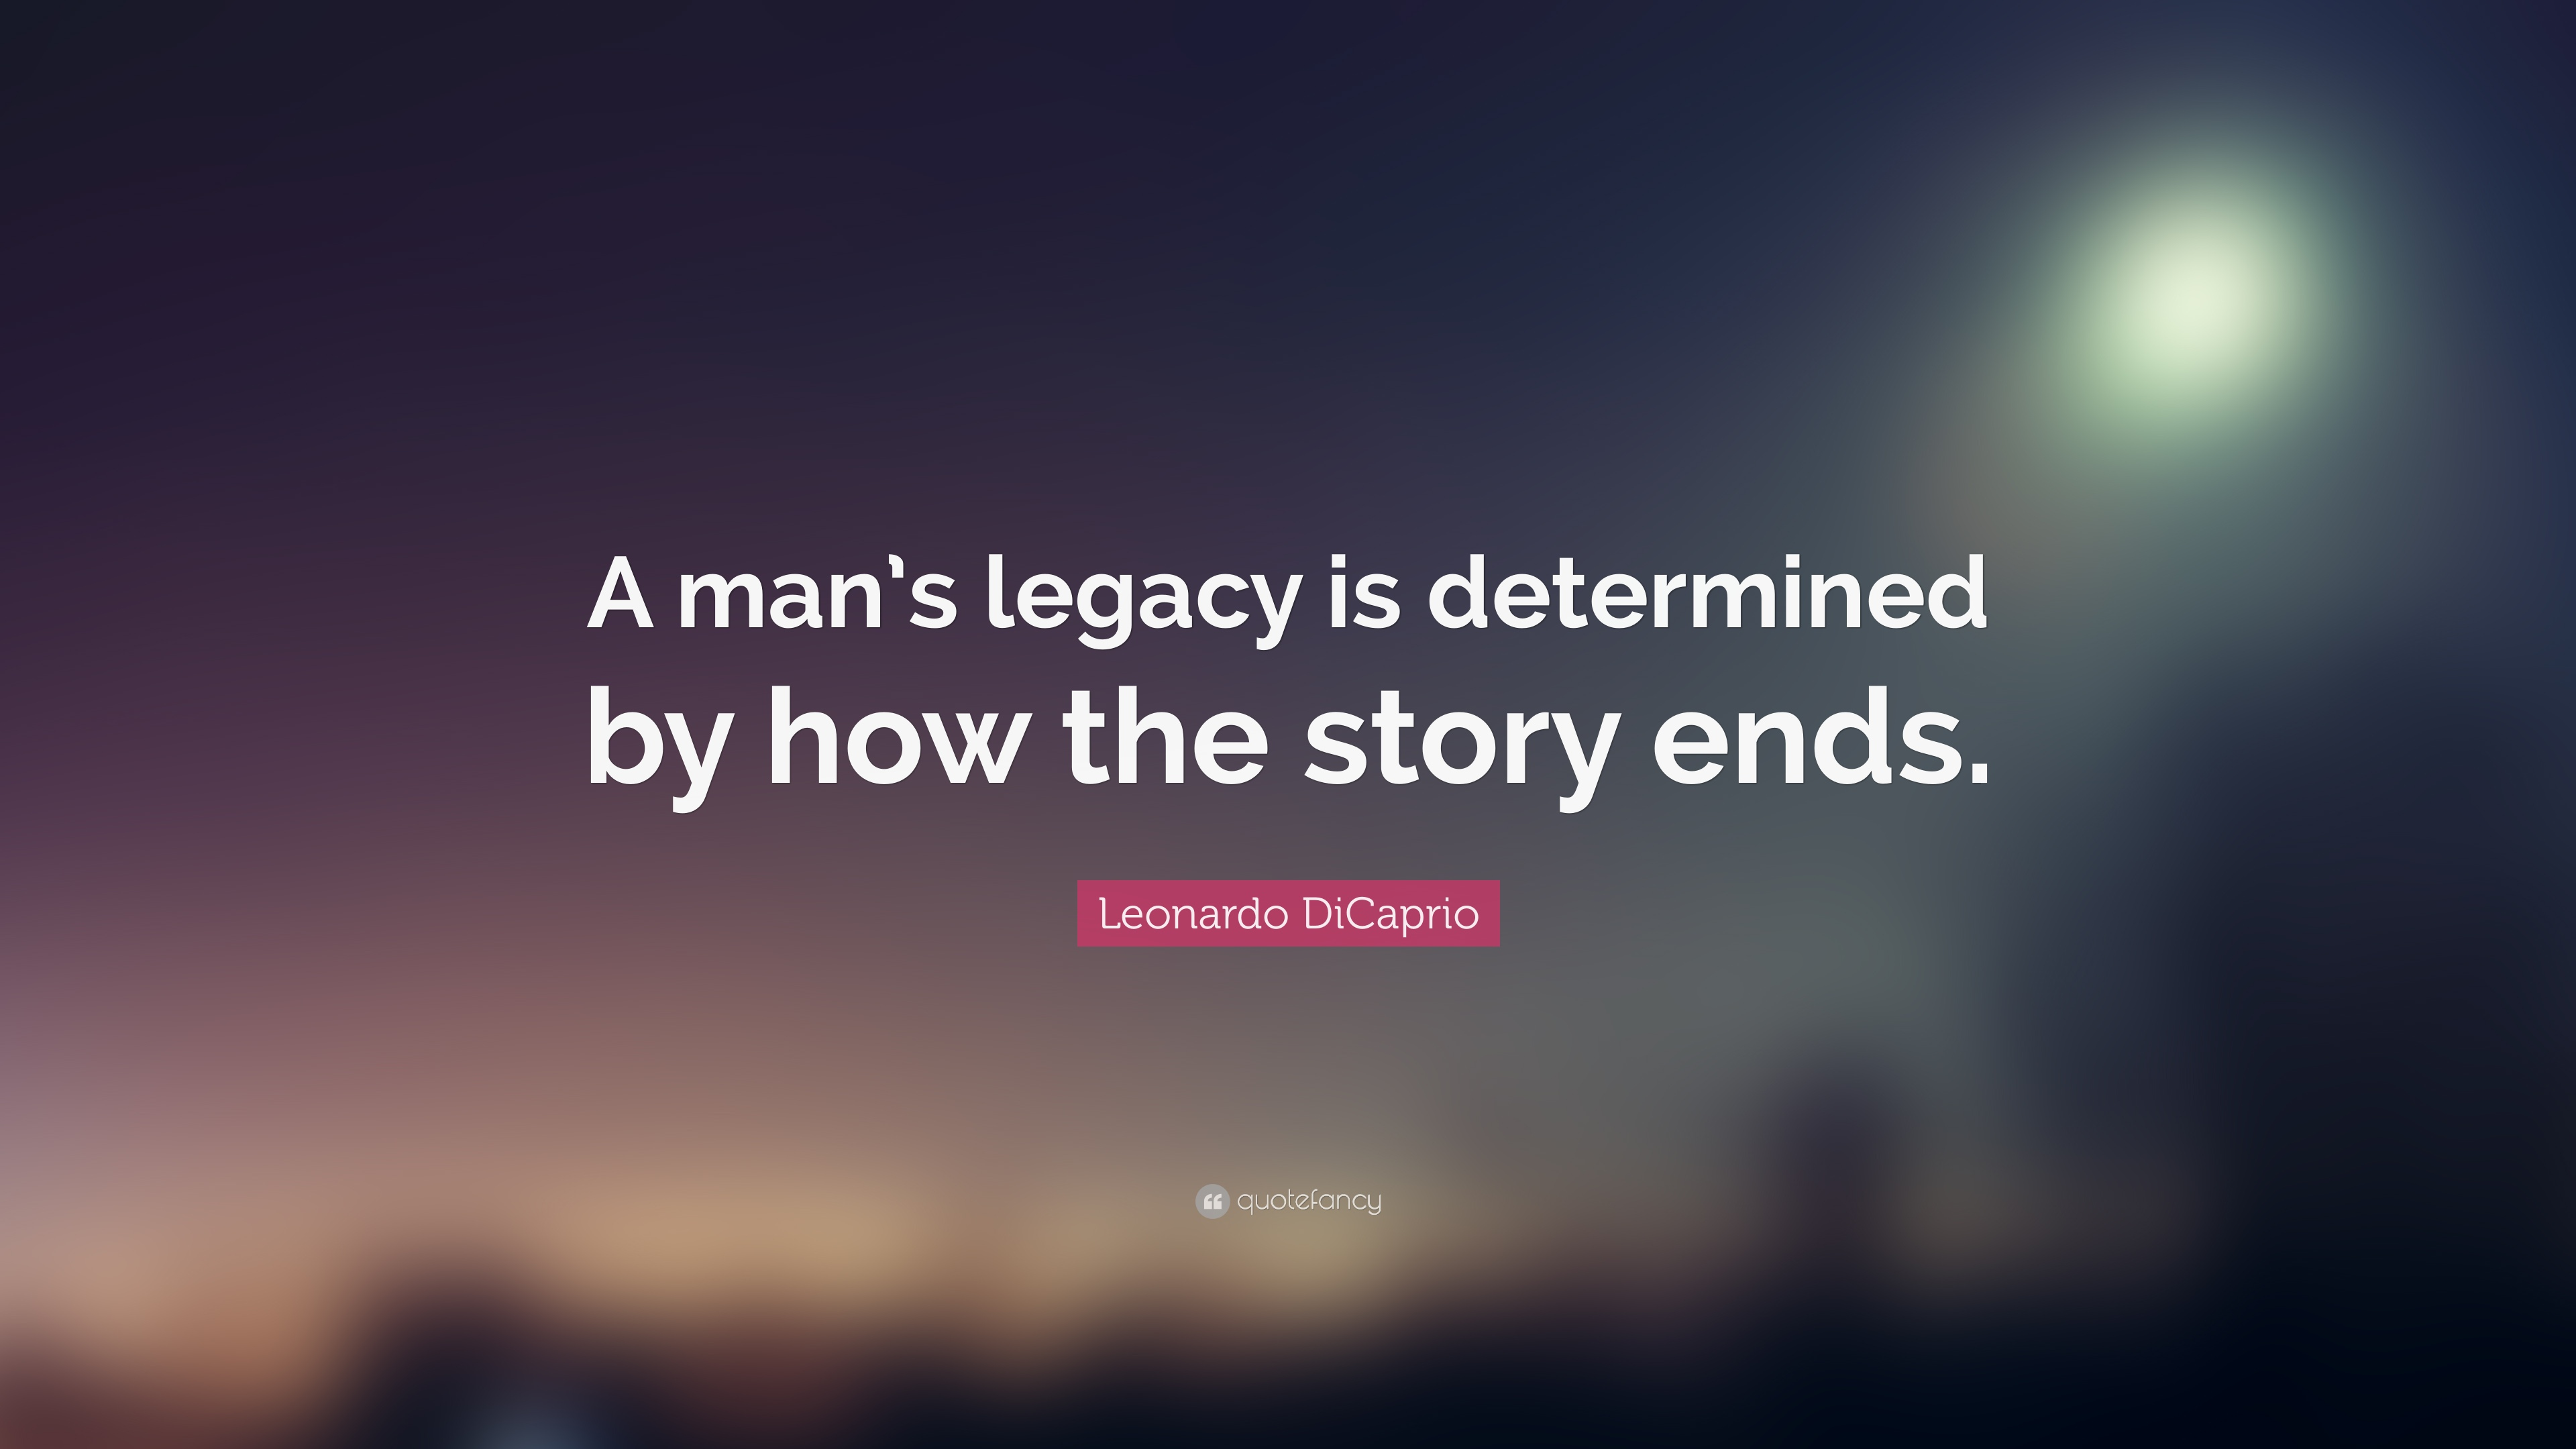 56569-leonardo-dicaprio-quote-a-man-s-legacy-is-determined-by-how-the